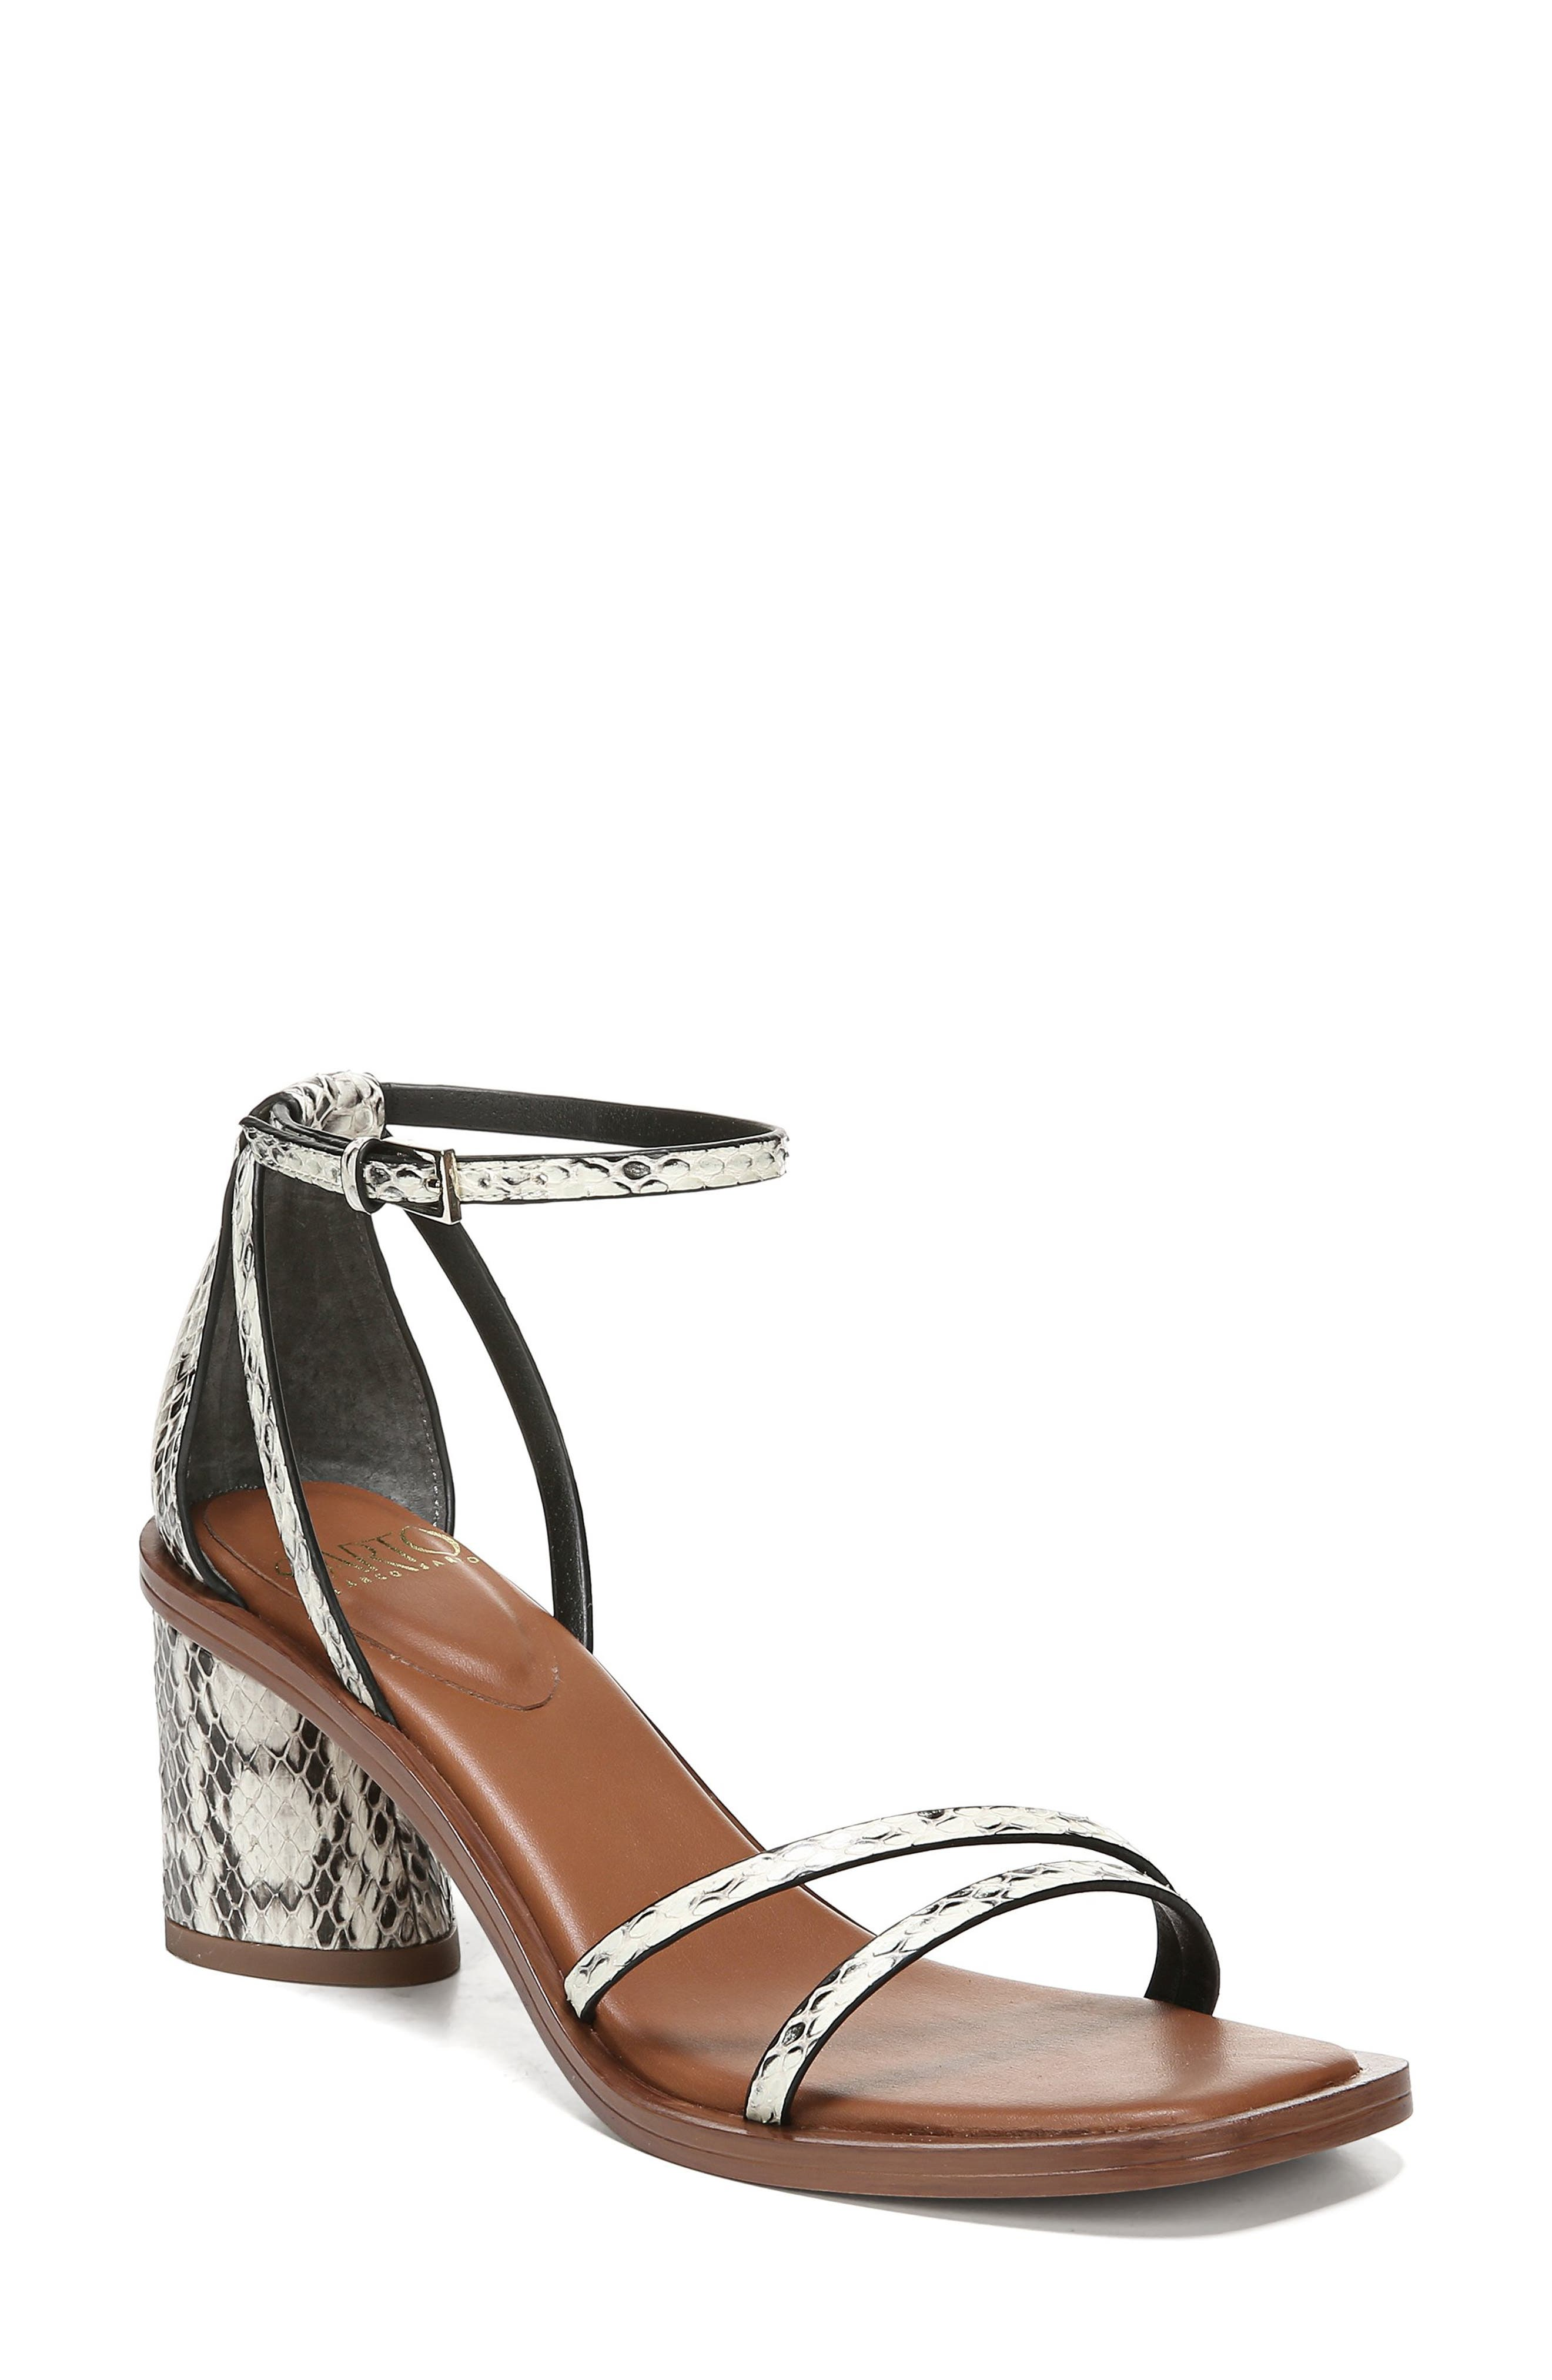 a91be7d2a2f6 Sarto By Franco Sarto A-Ronelle Ankle Strap Sandal